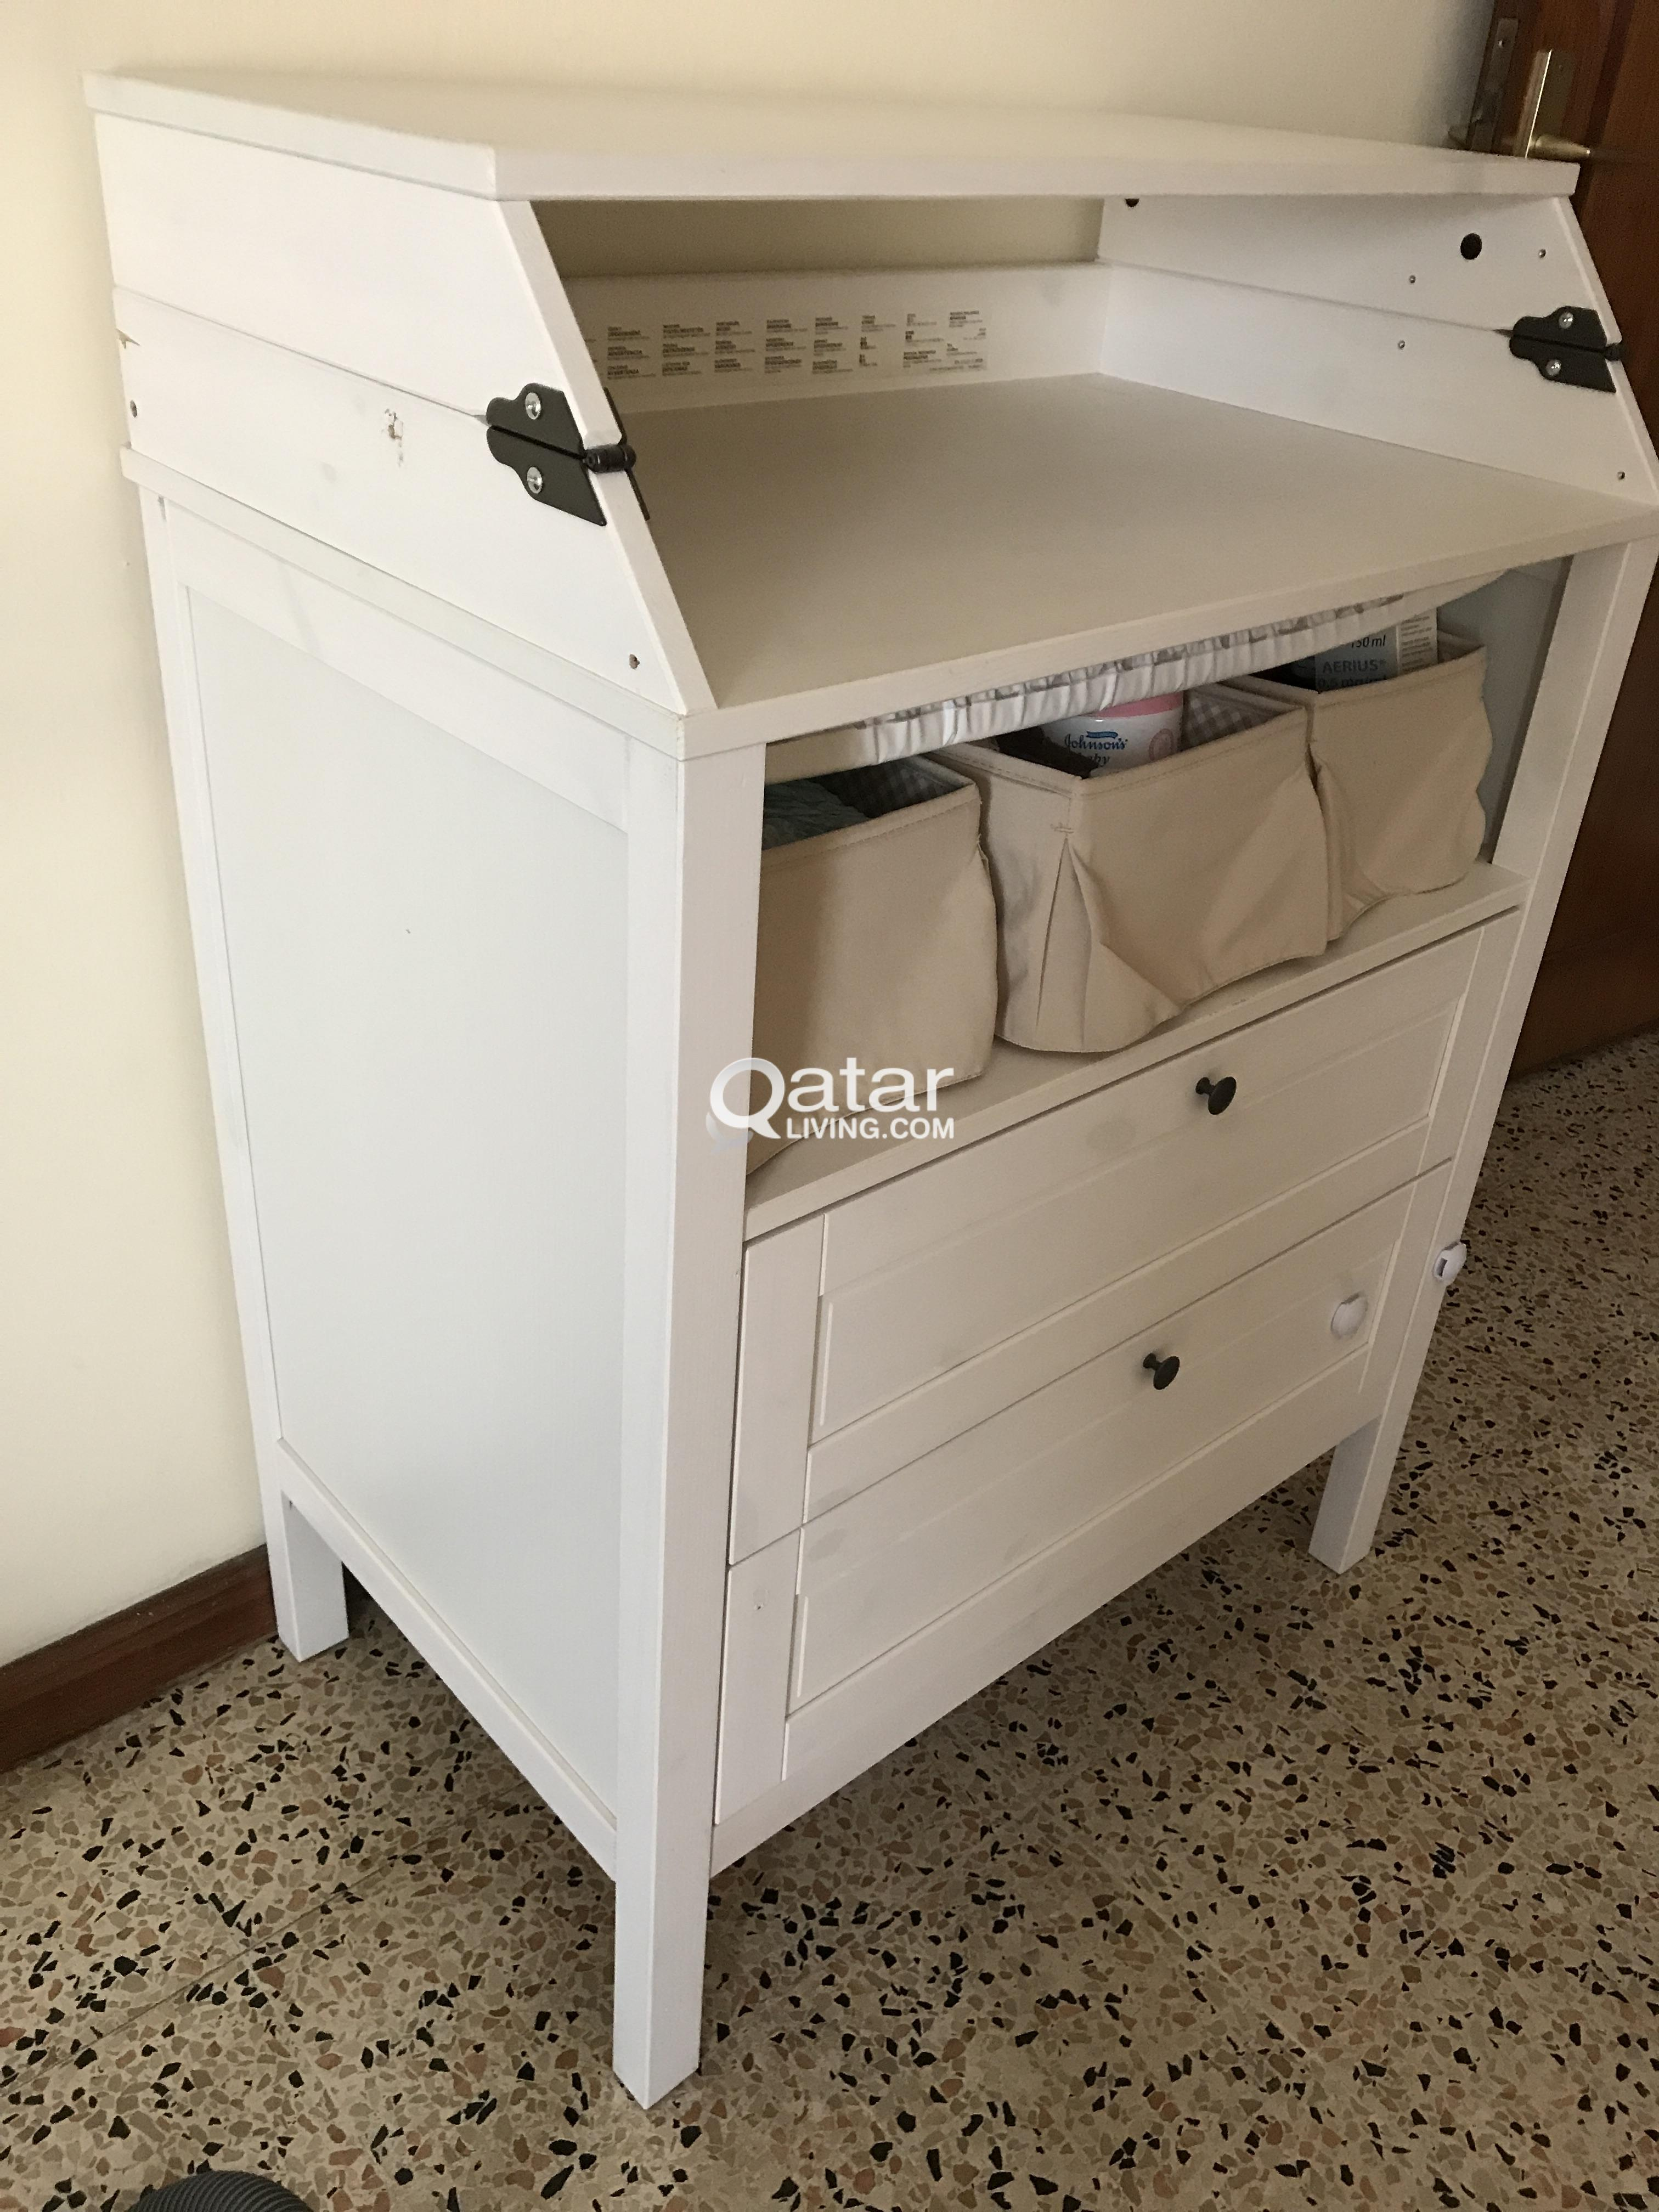 Make An Offer Baby Changing Table From Ikea Qatar Living